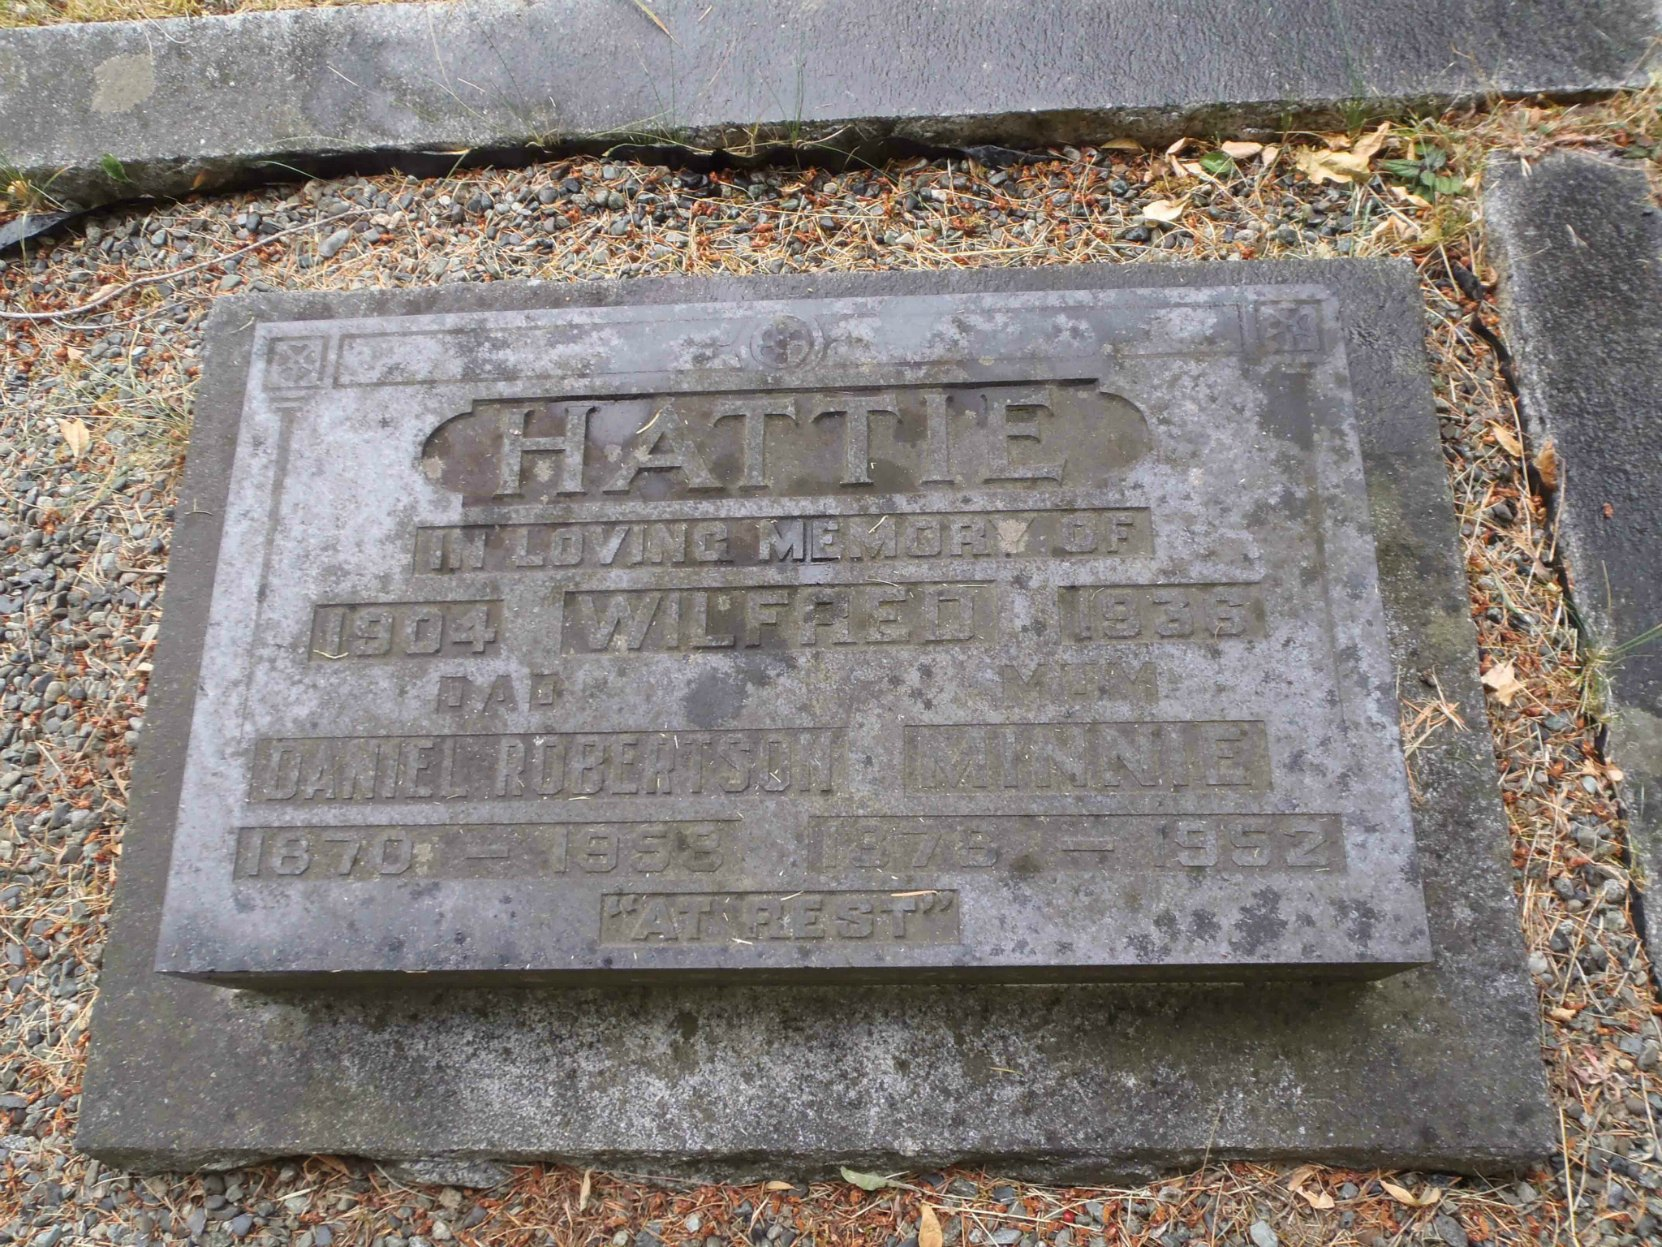 Daniel Robertson & Minnie Hattie grave marker, Mountain View Cemetery, Somenos Road, North Cowichan.